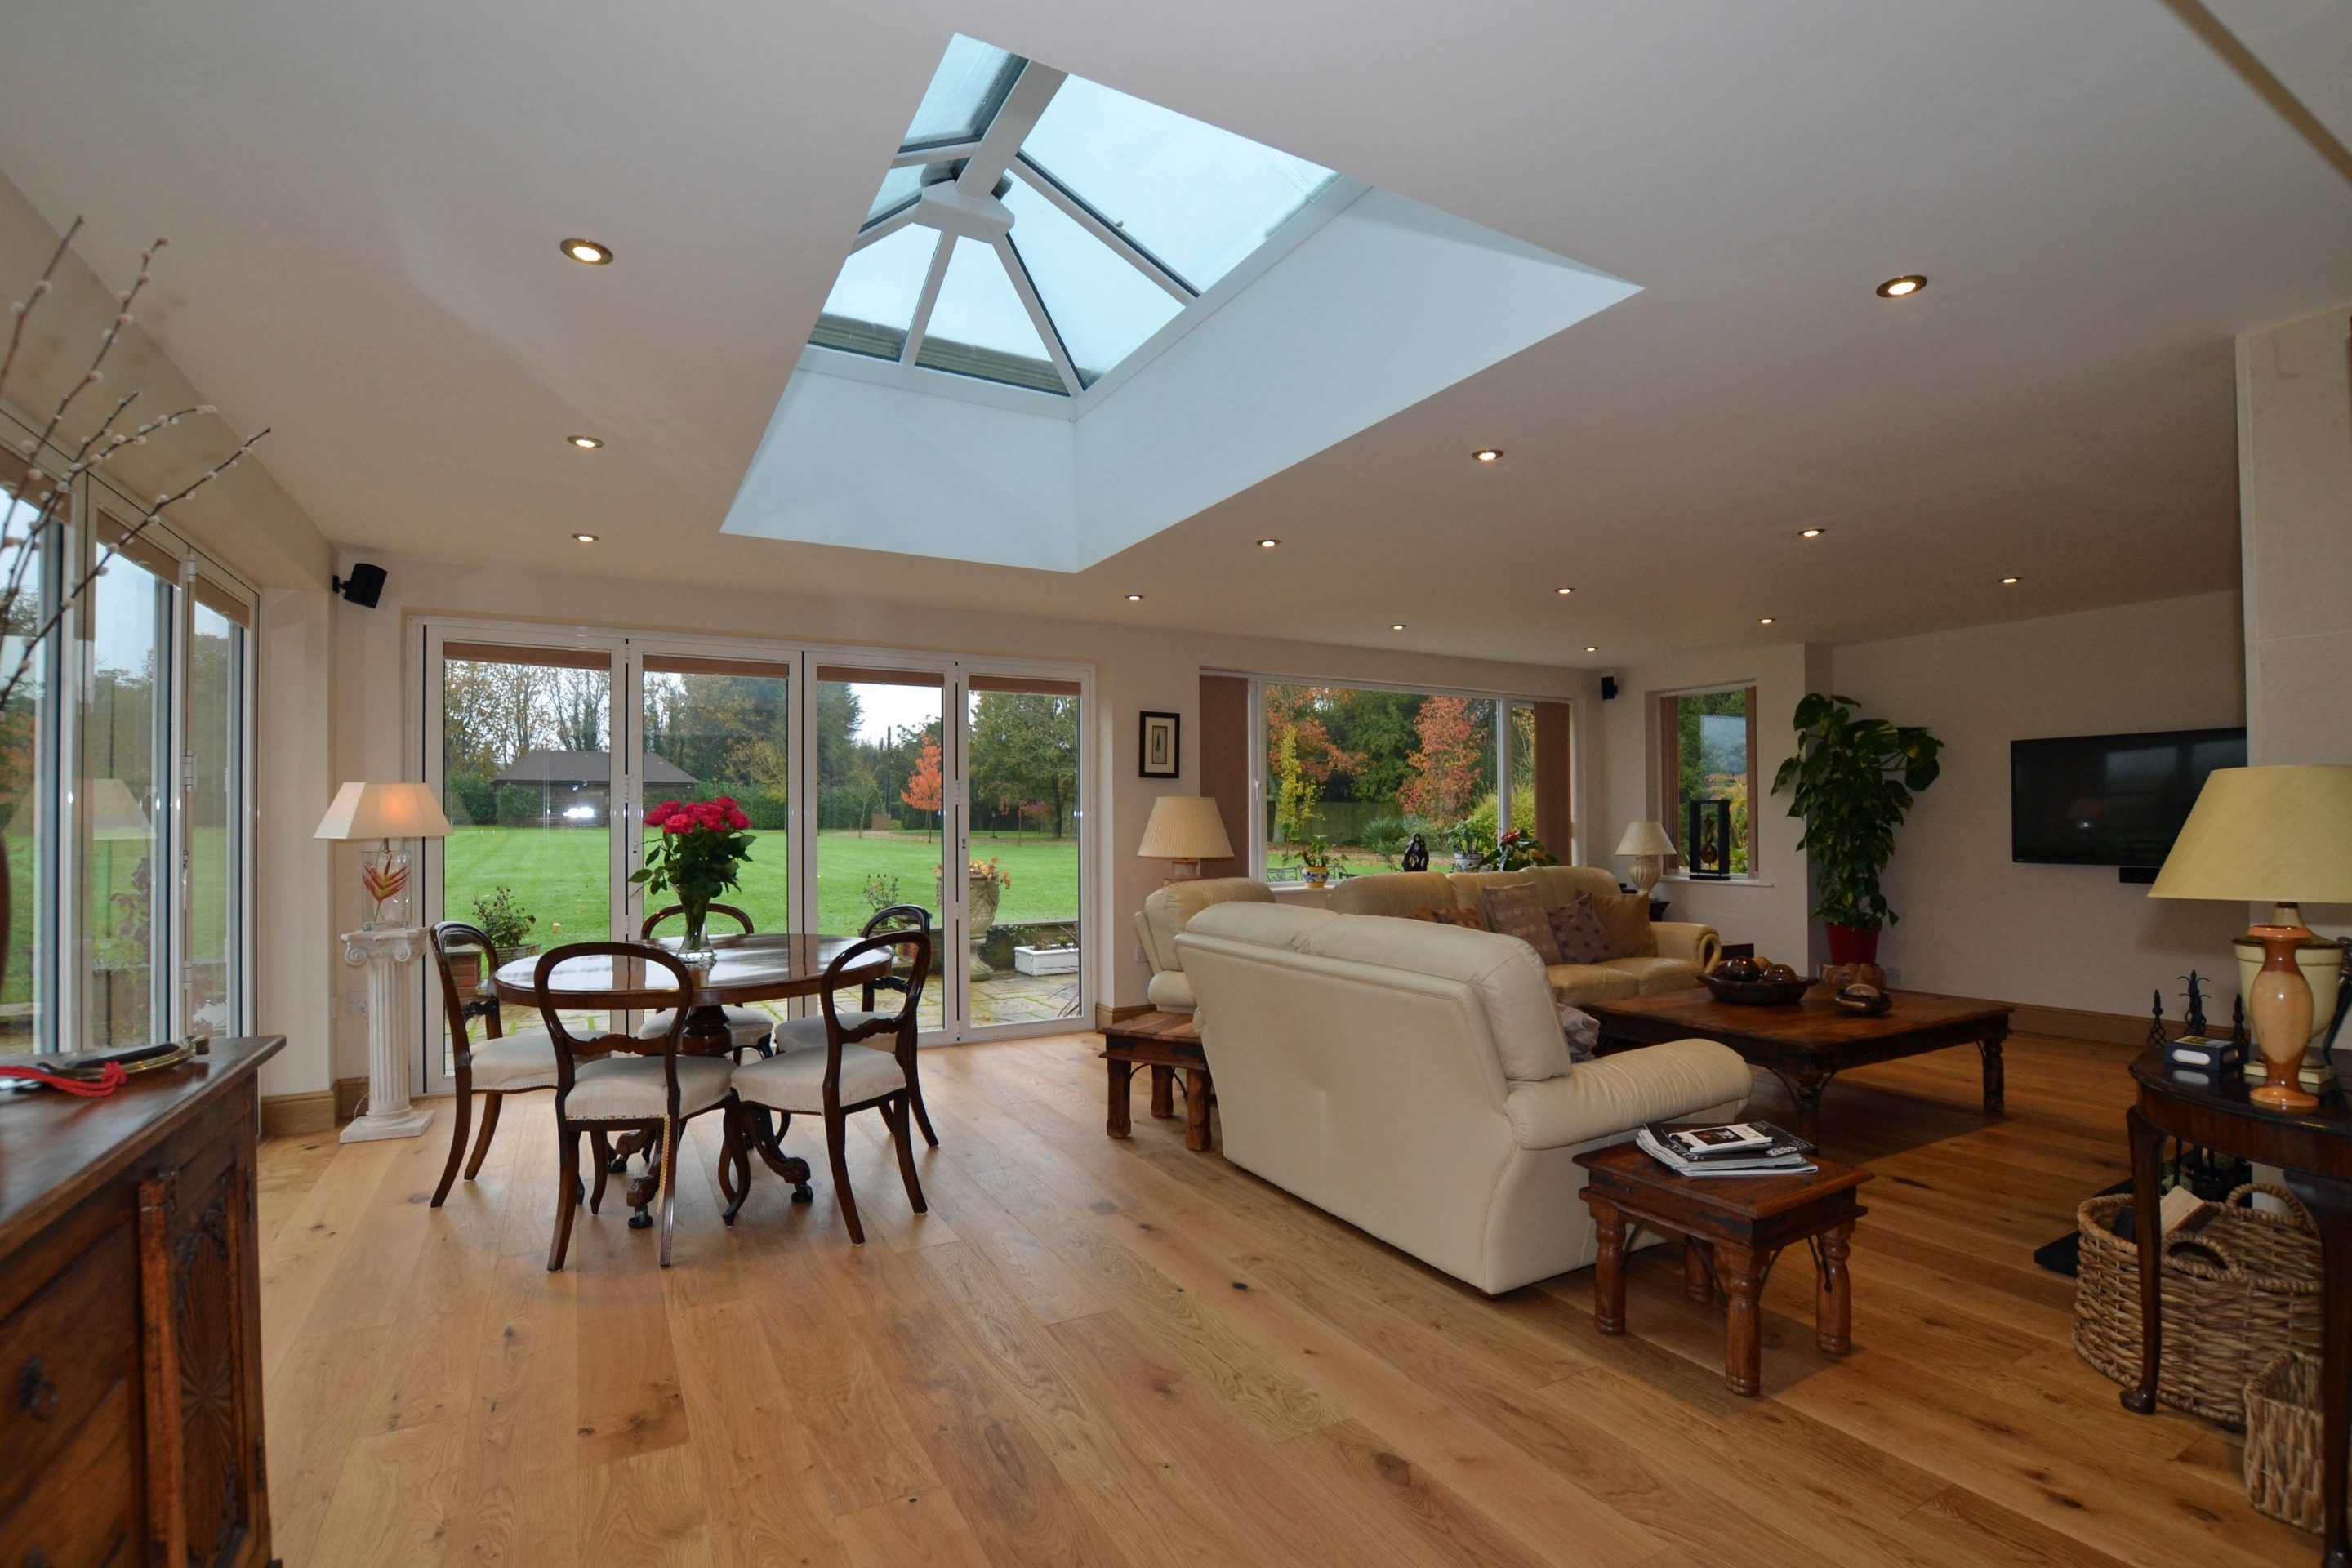 Single storey house extension marlborough wiltshire for House extension interior designs